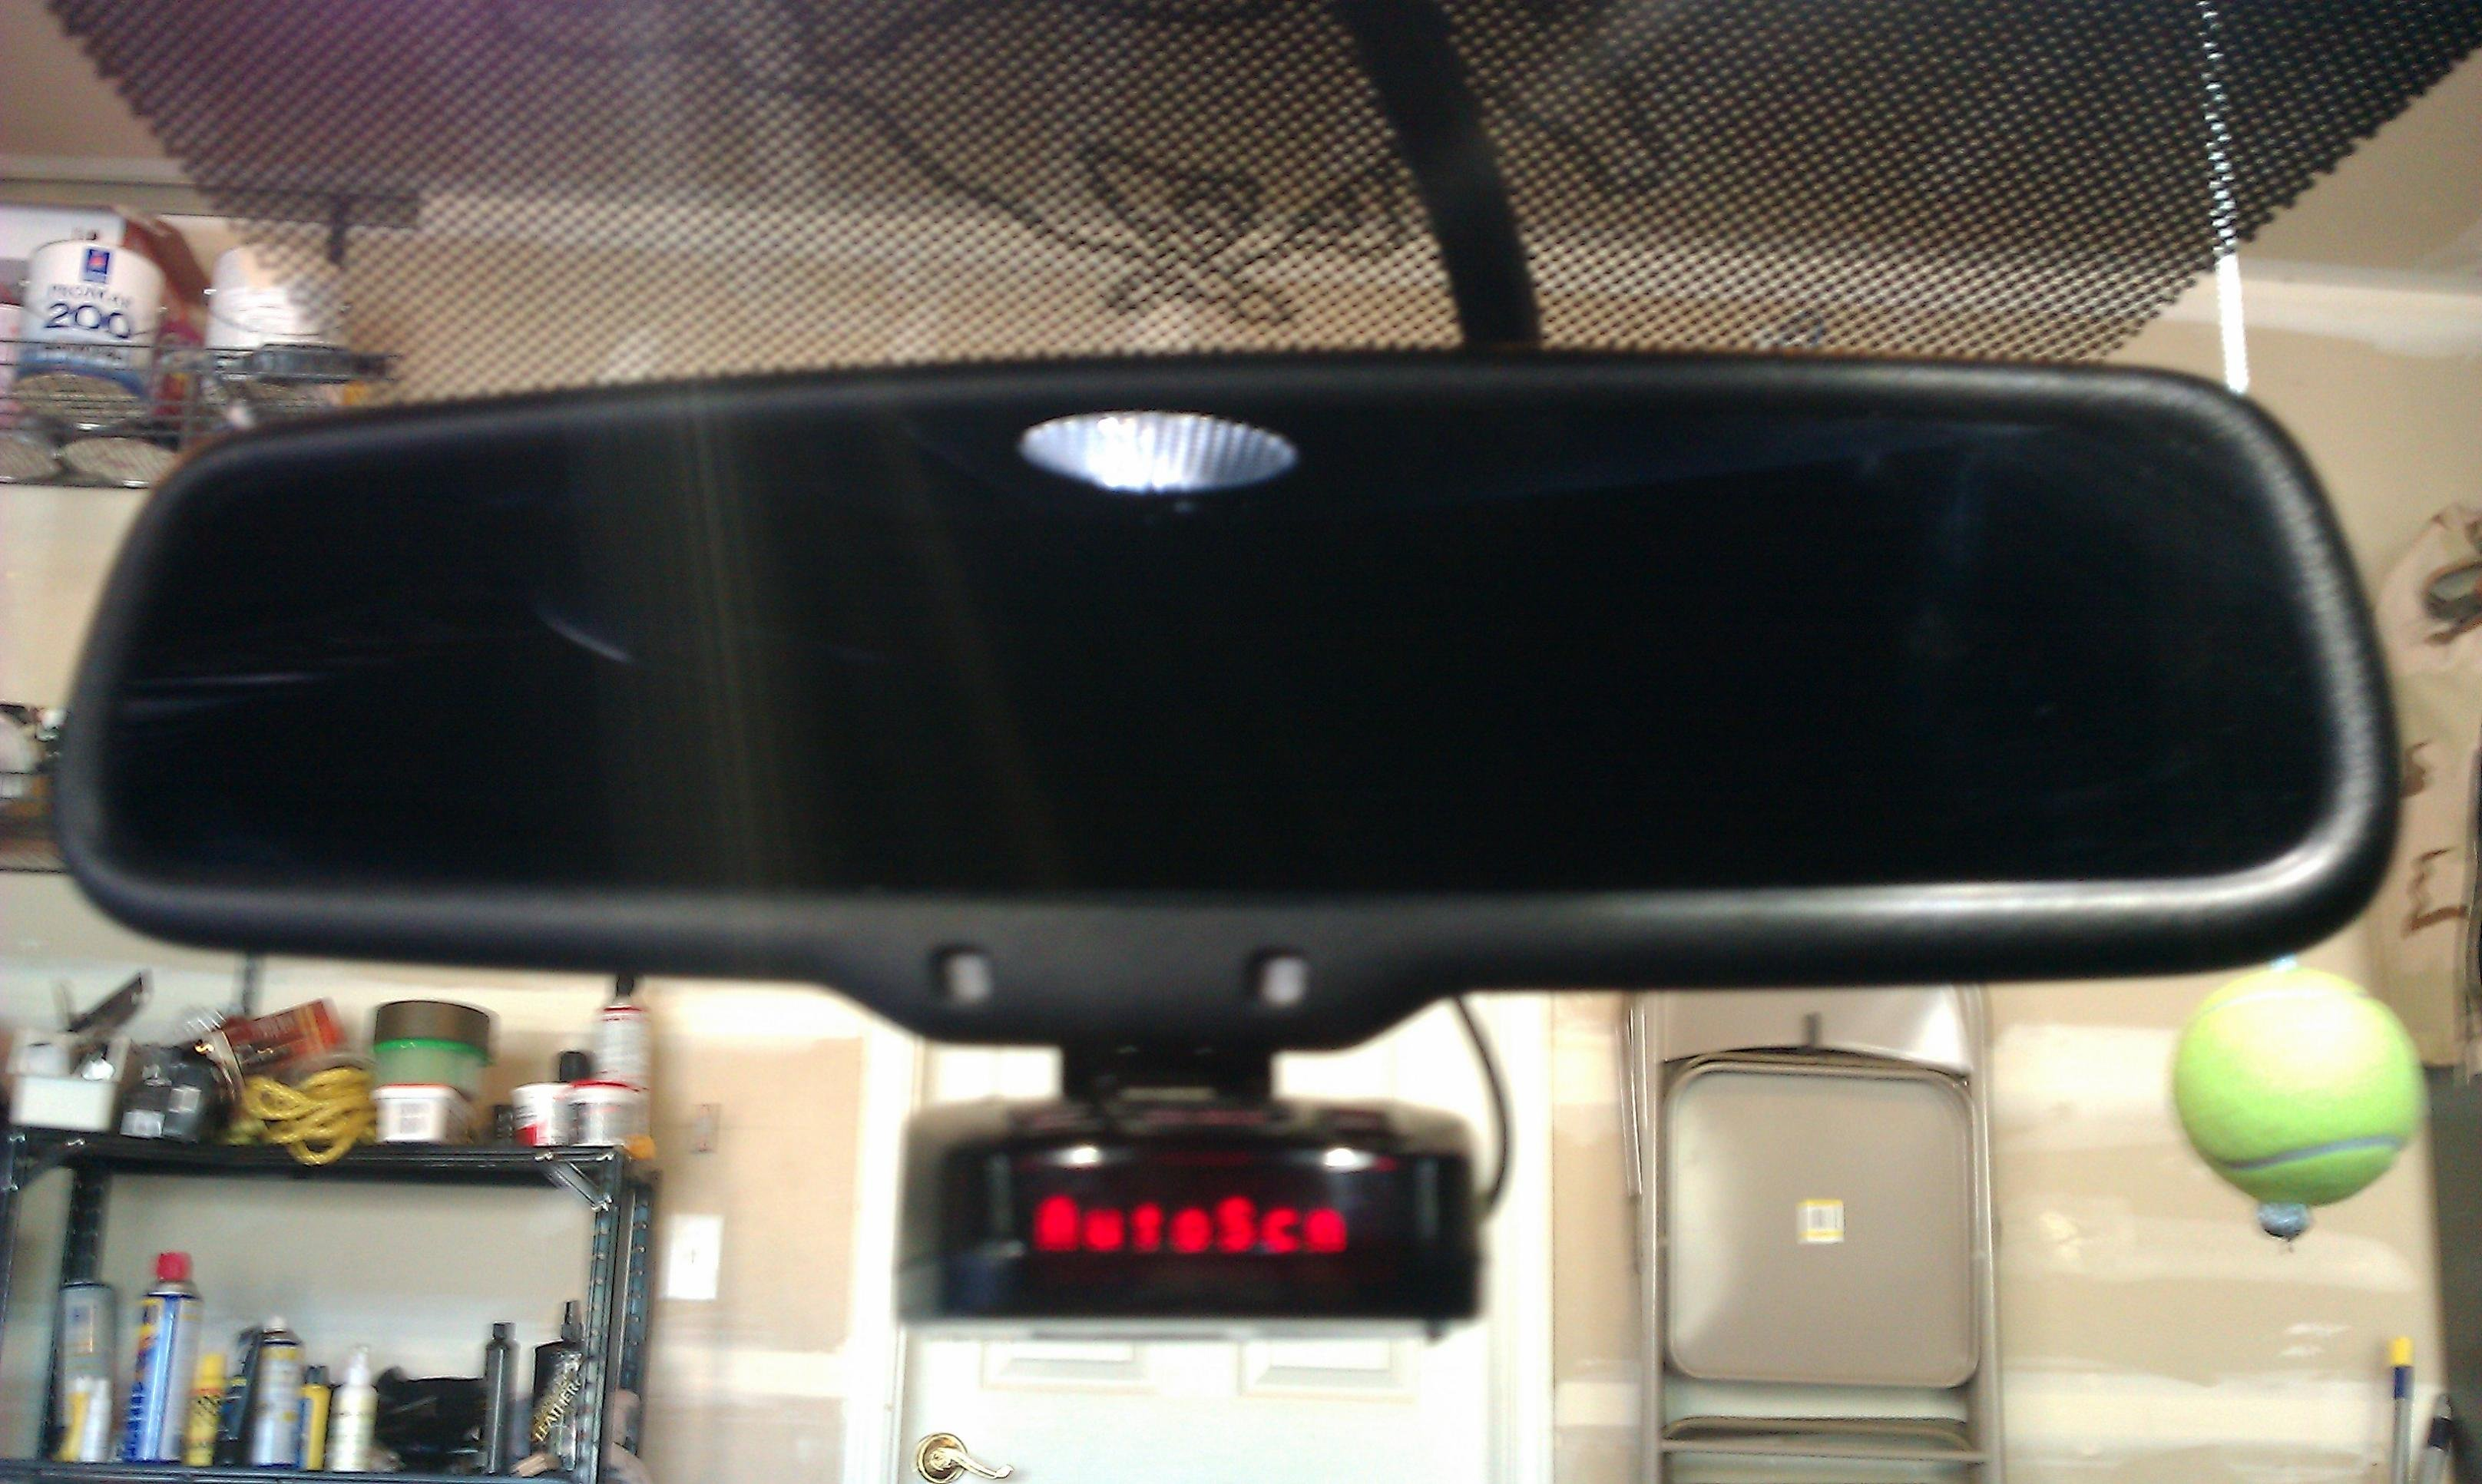 159501d1341689454 installed rogue mount rear view mirror imag0171 installed rogue mount on rear view mirror ford mustang forum  at soozxer.org